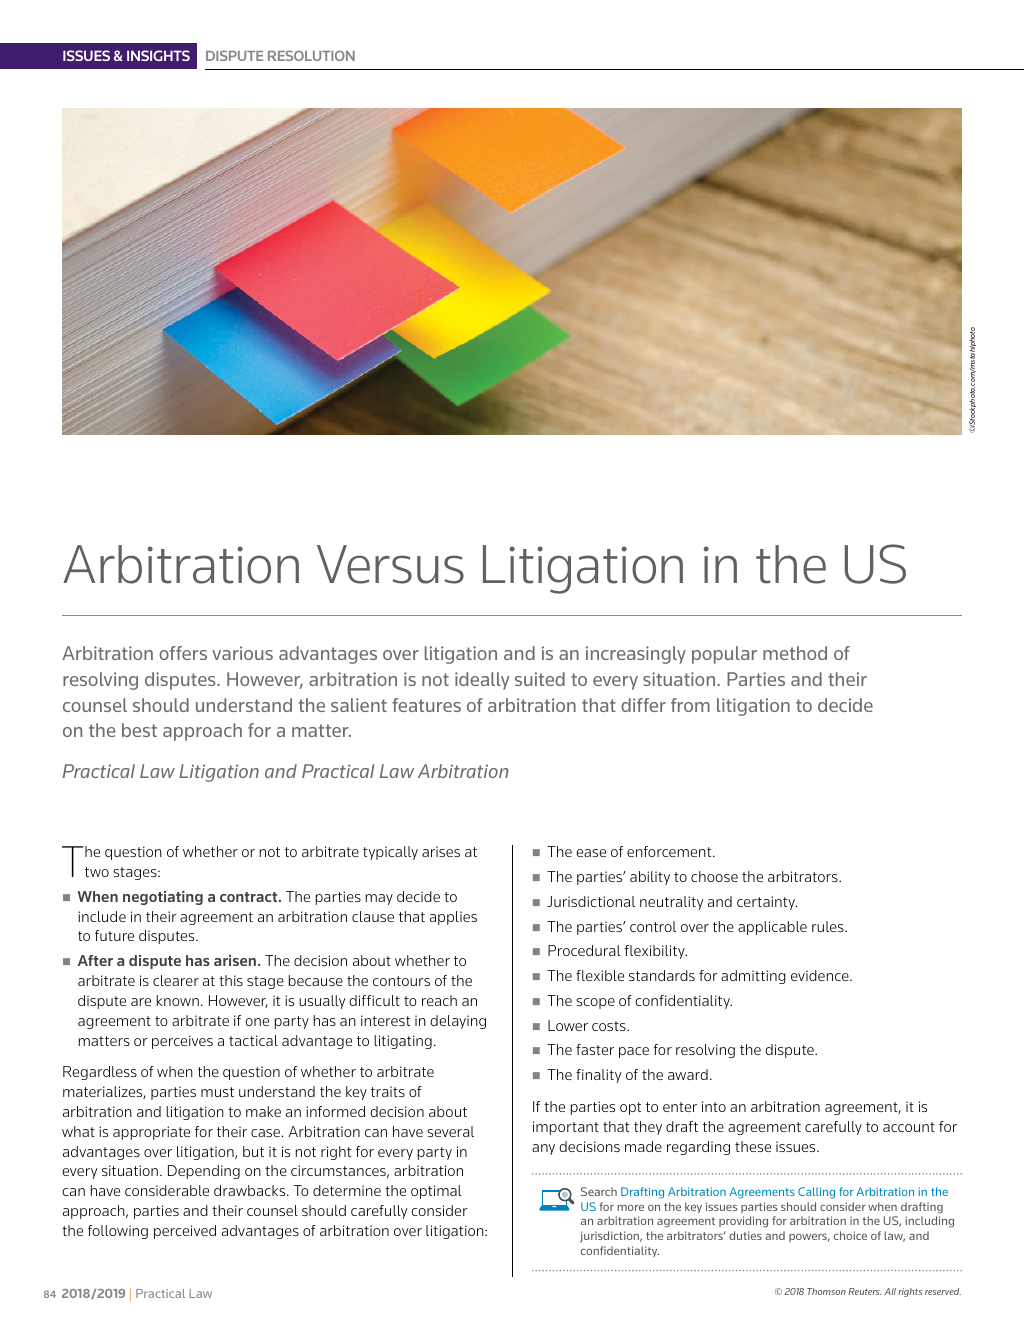 Issues Insights Arbitration Versus Litigation In The Us